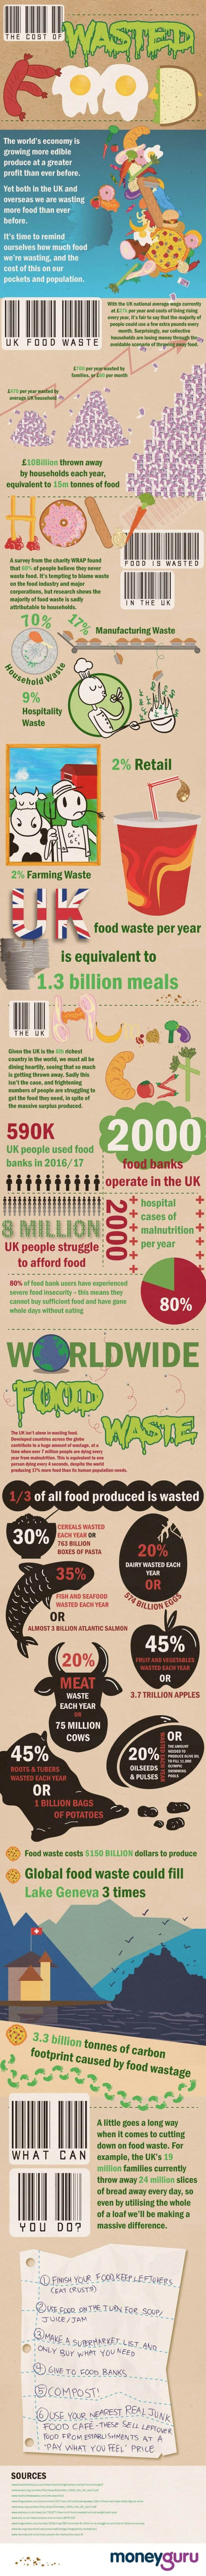 Food Wastage Infographic